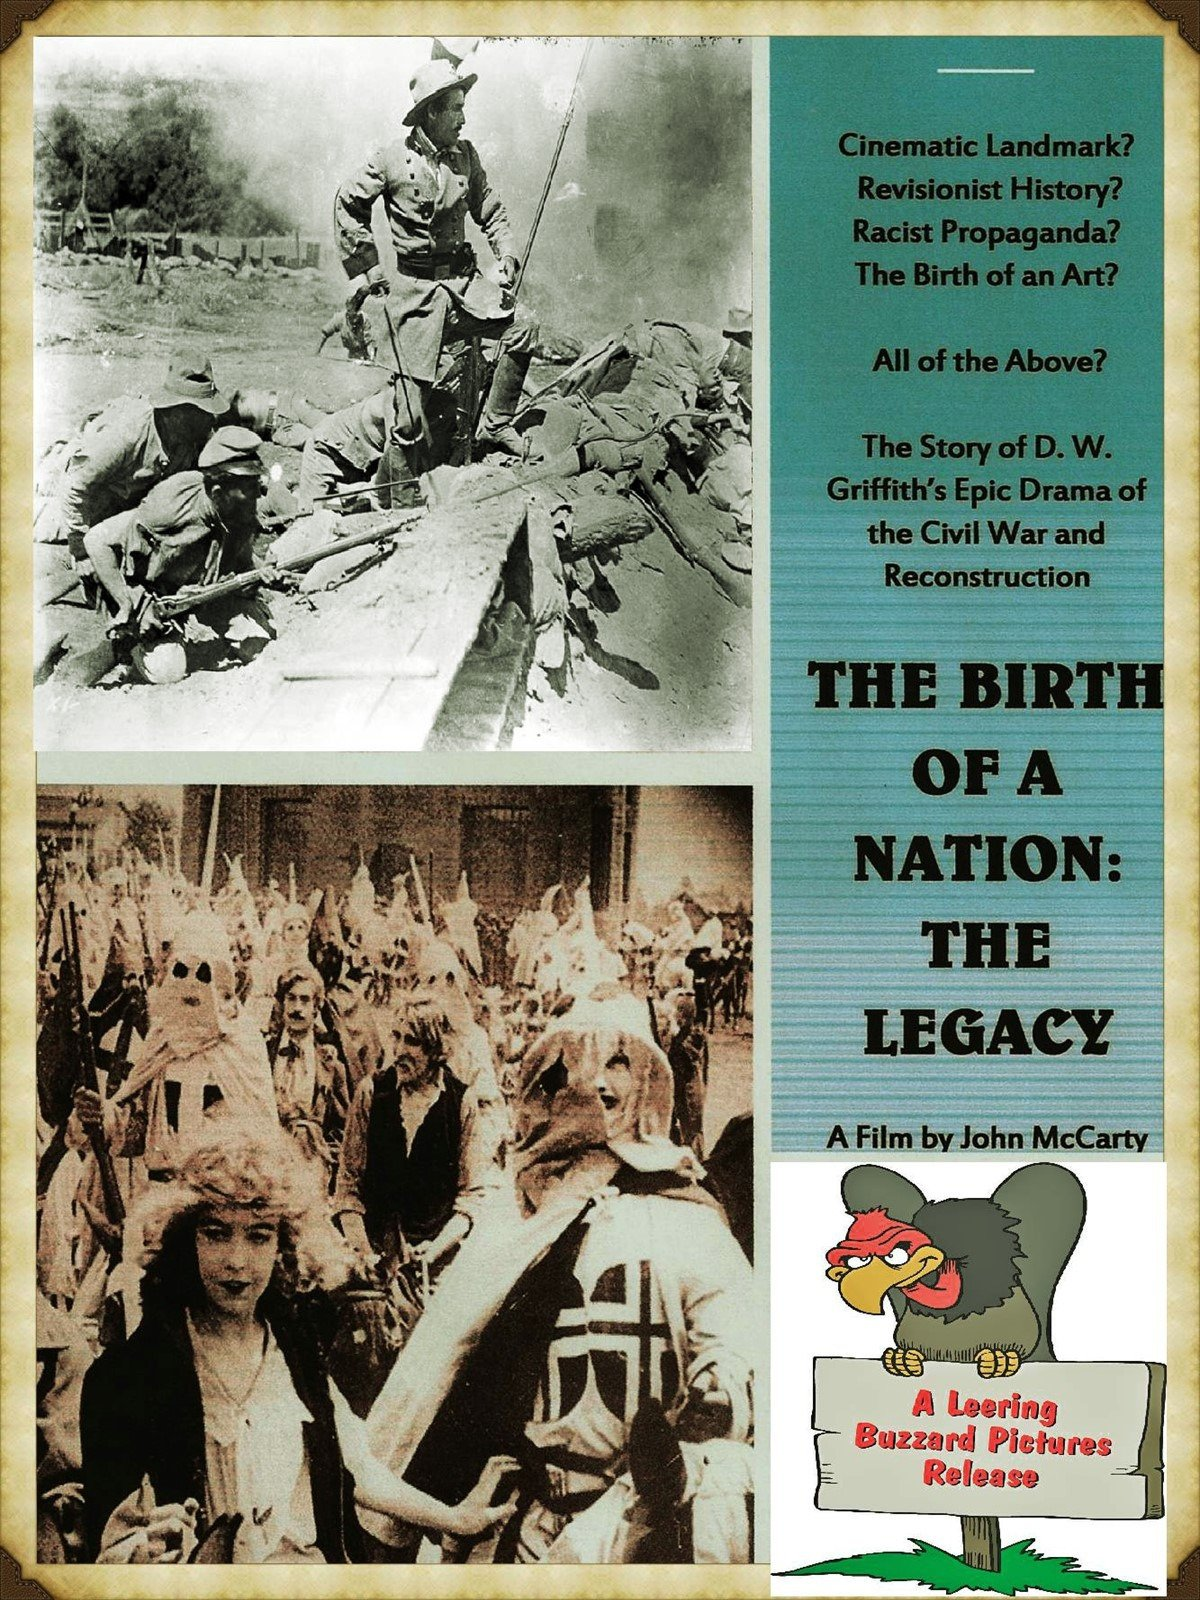 The Birth of a Nation: The Legacy